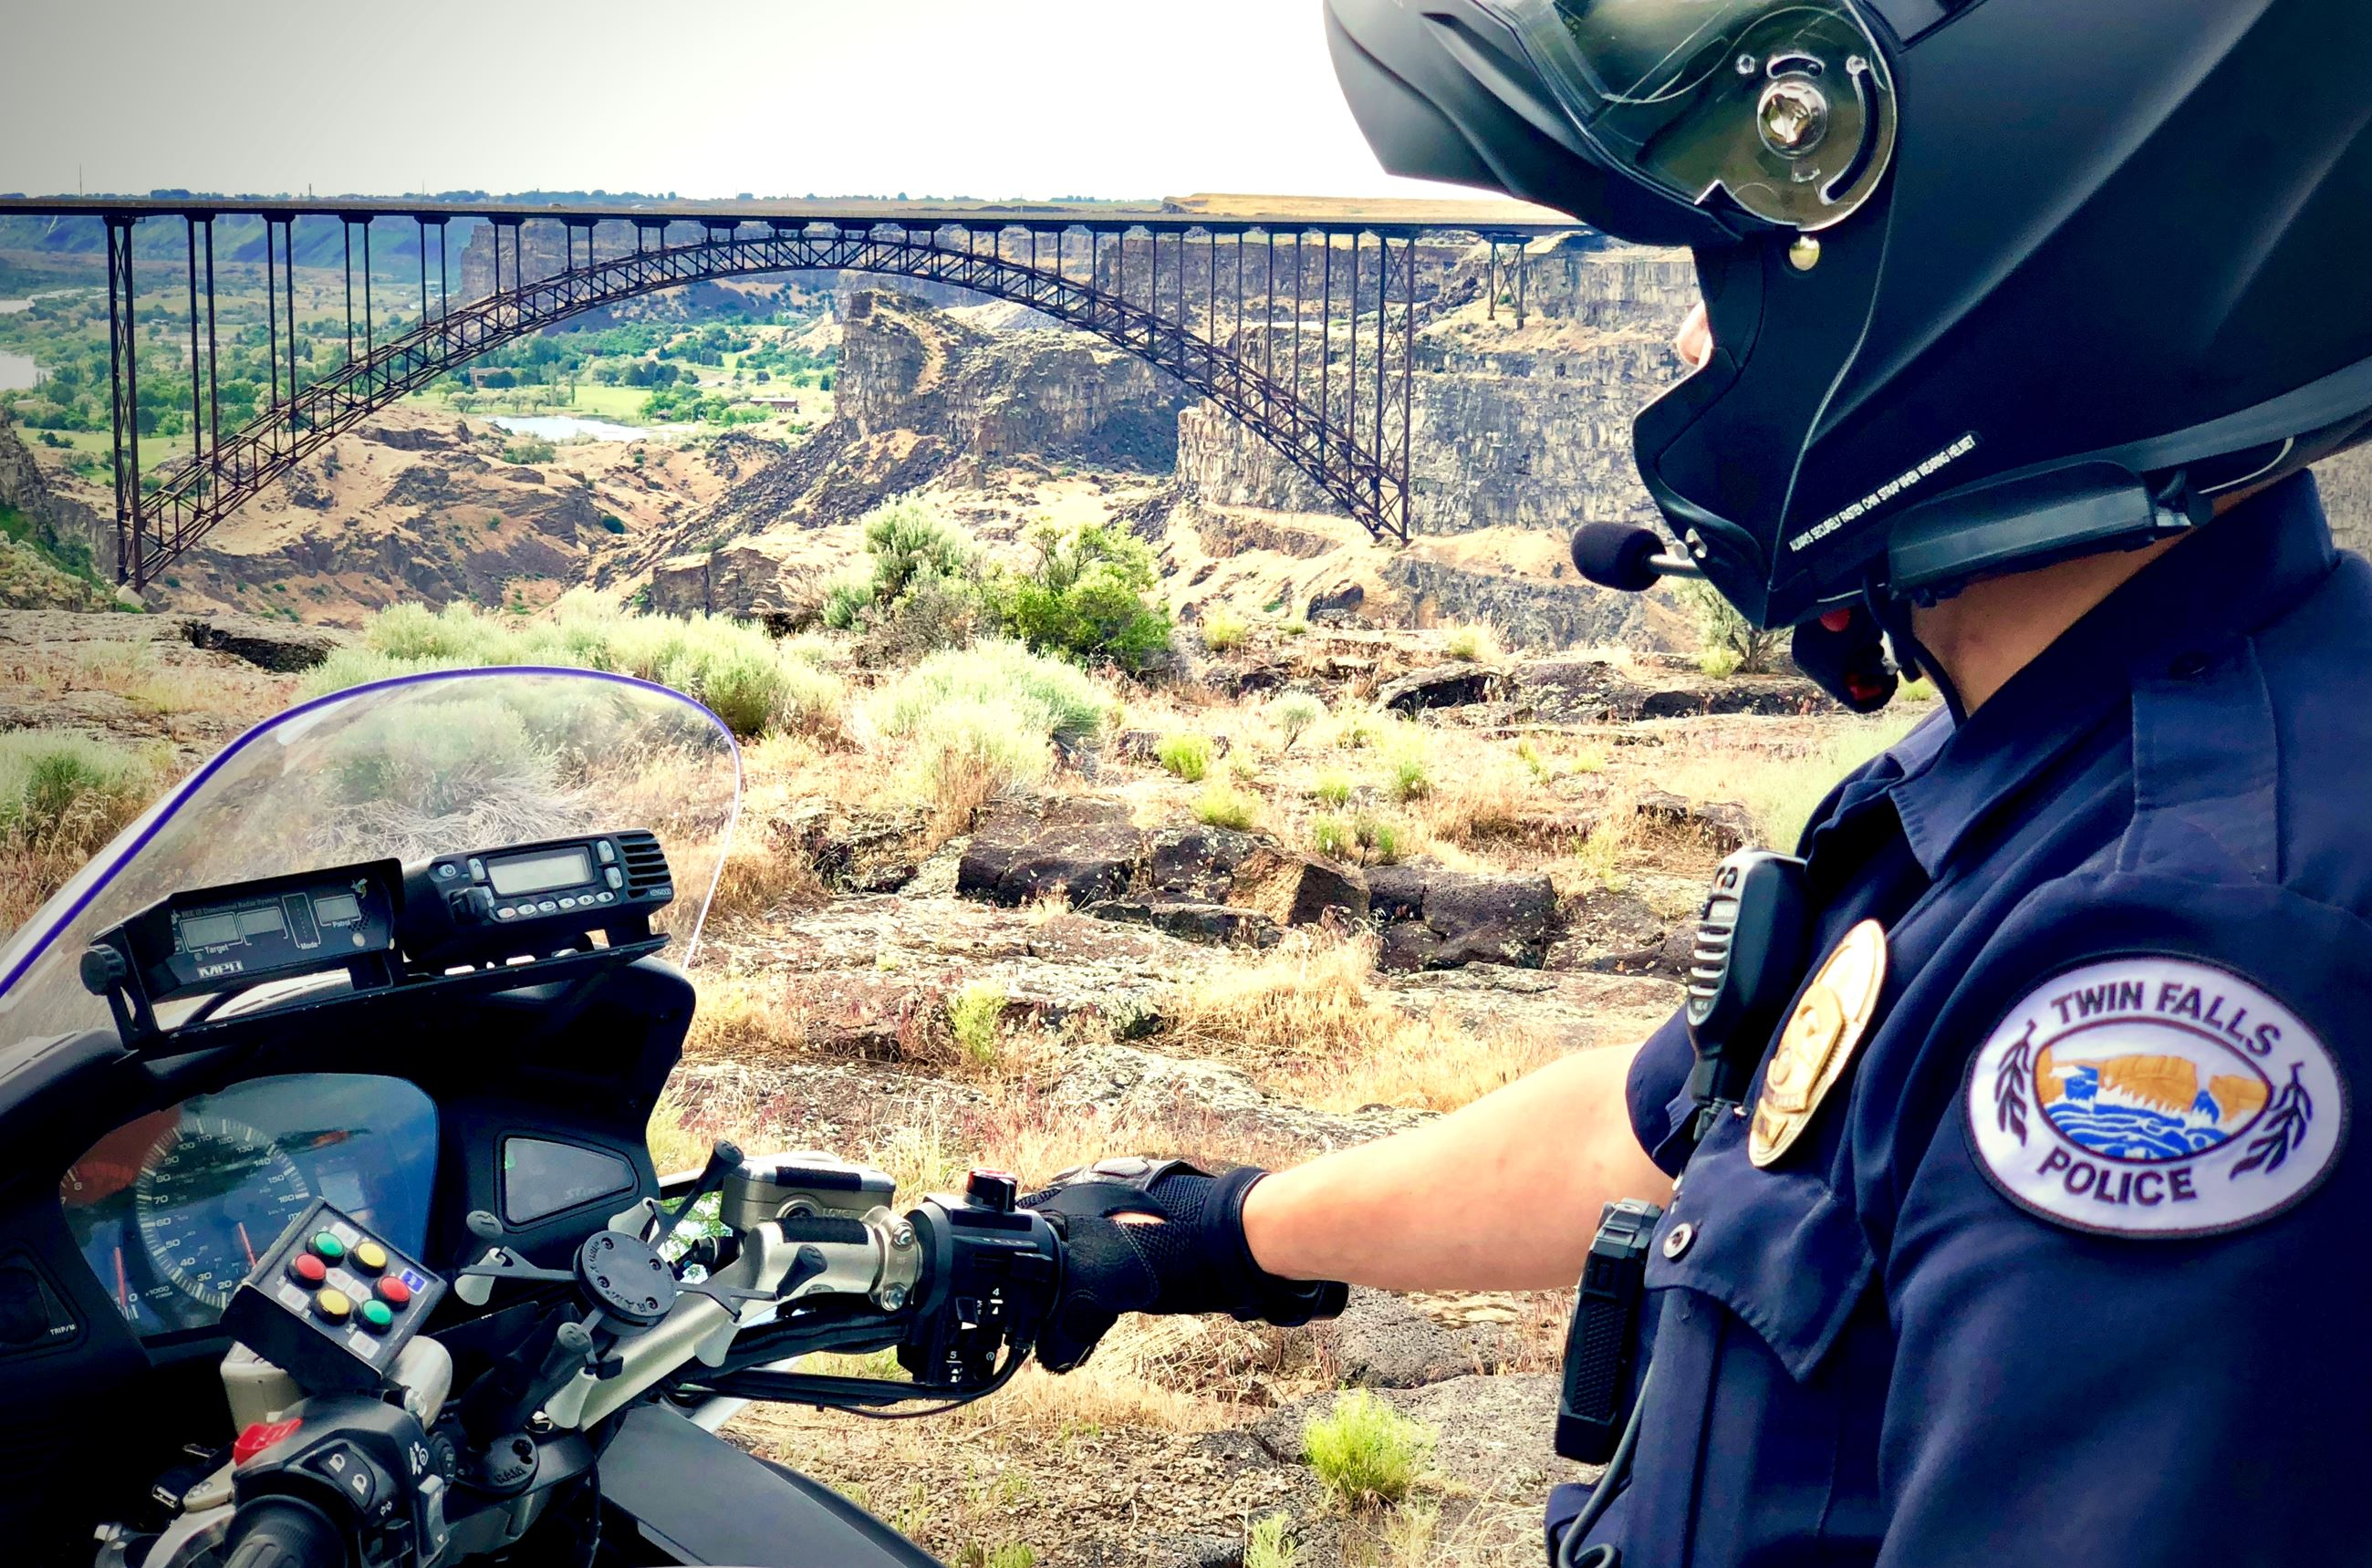 Twin Falls Police Patrol by Perrine Bridge